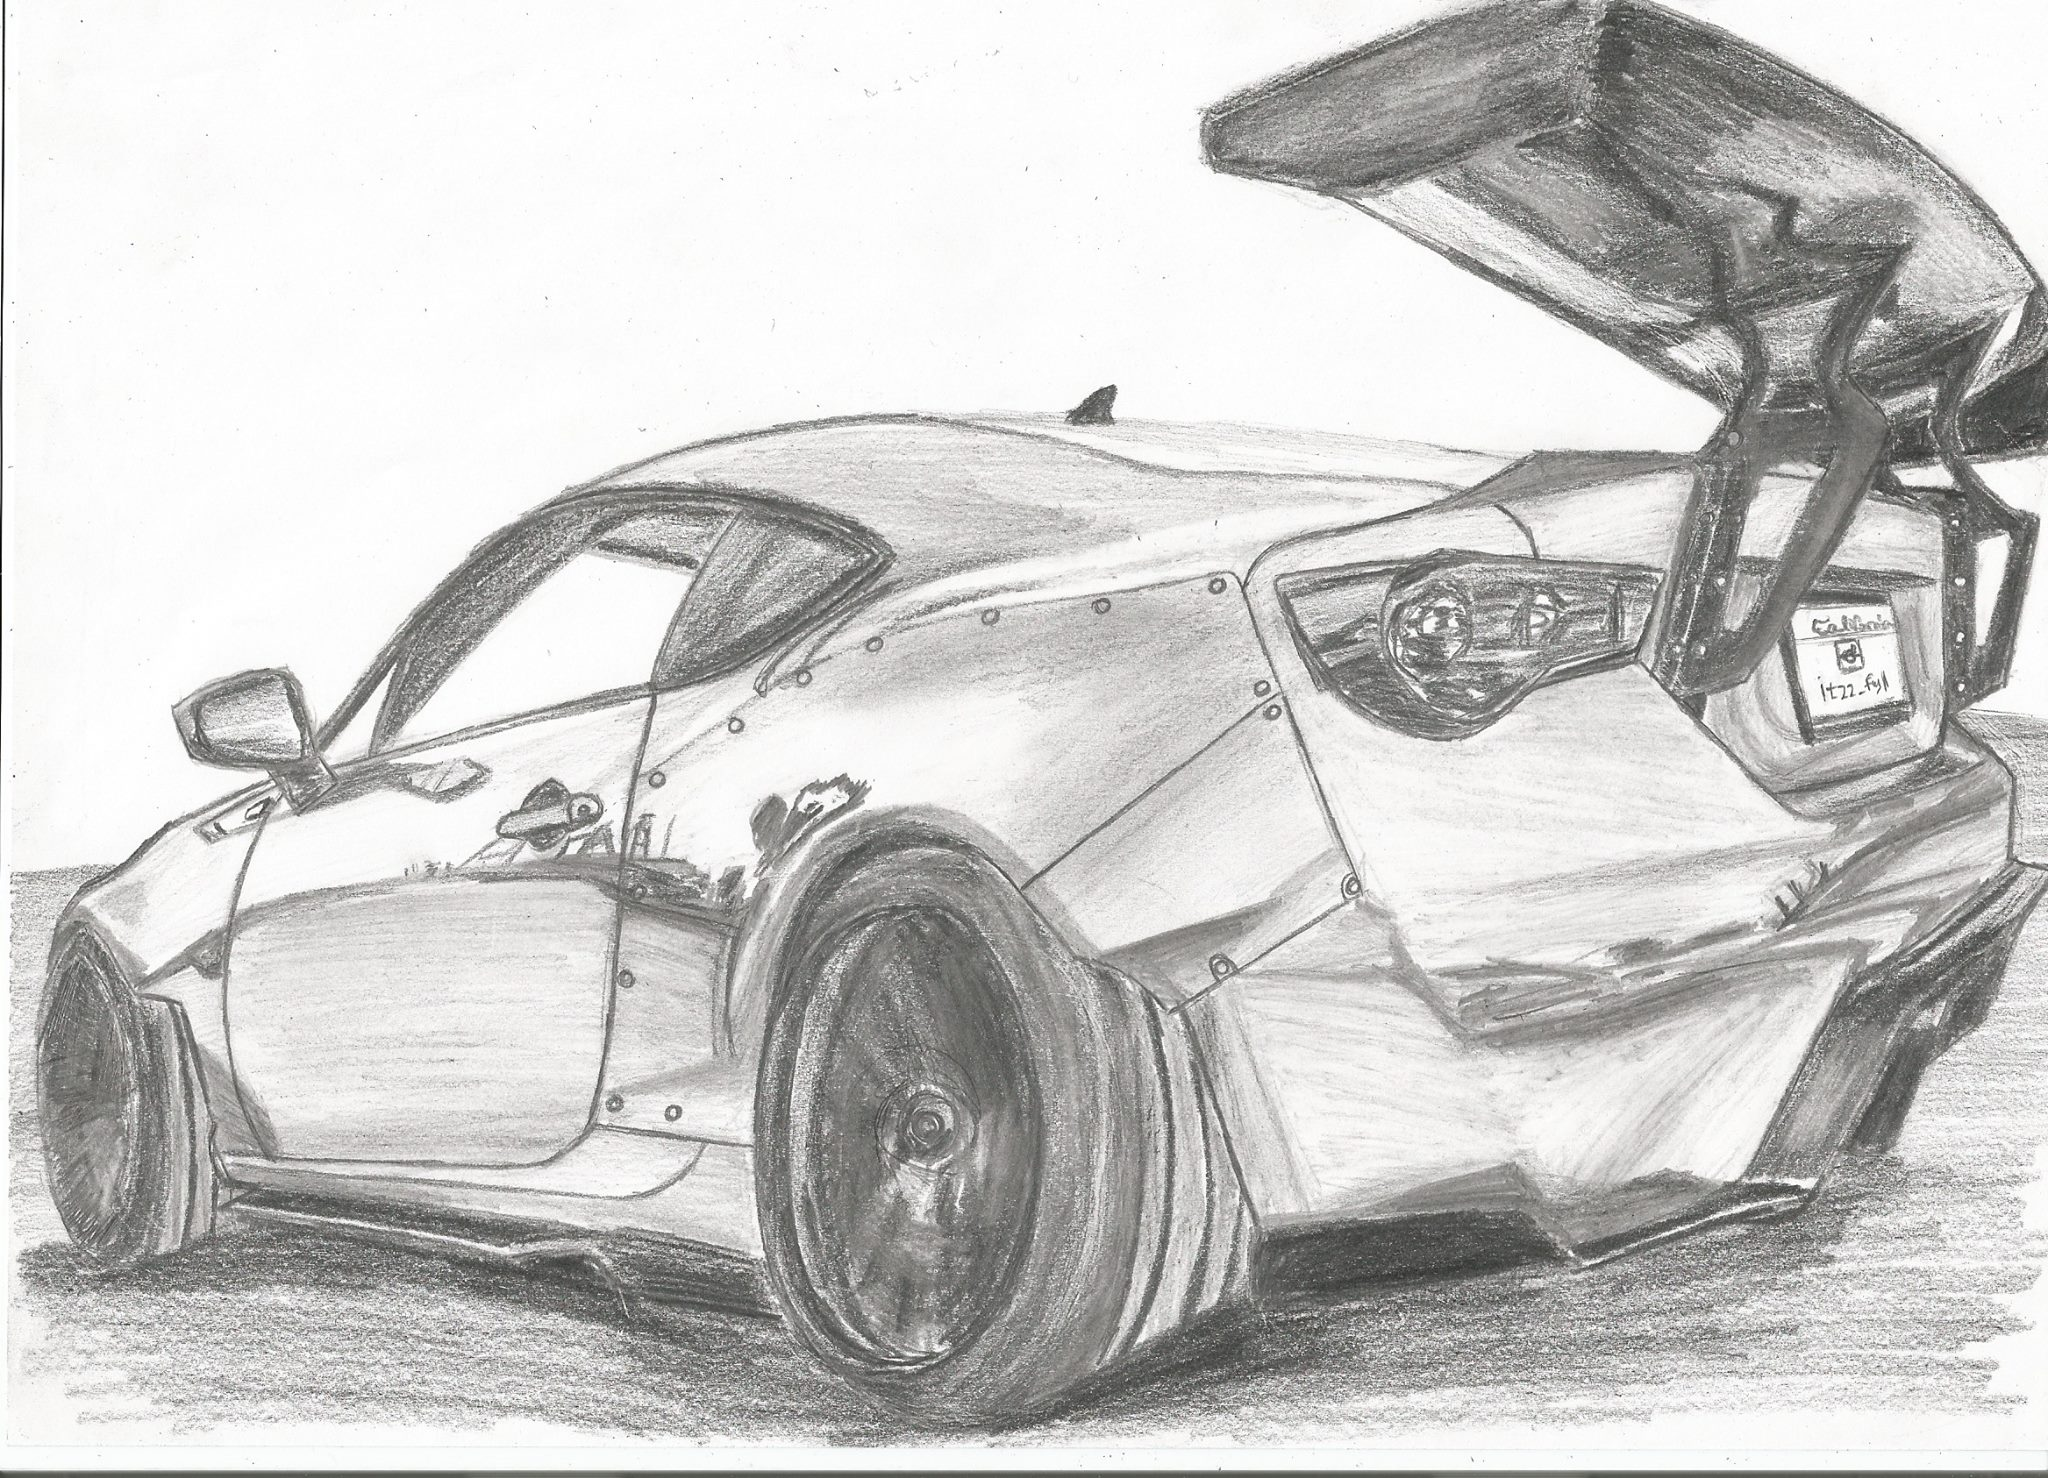 Toyota Gt86 Rocket Bunny Kit Drawing Made By Me Hope You